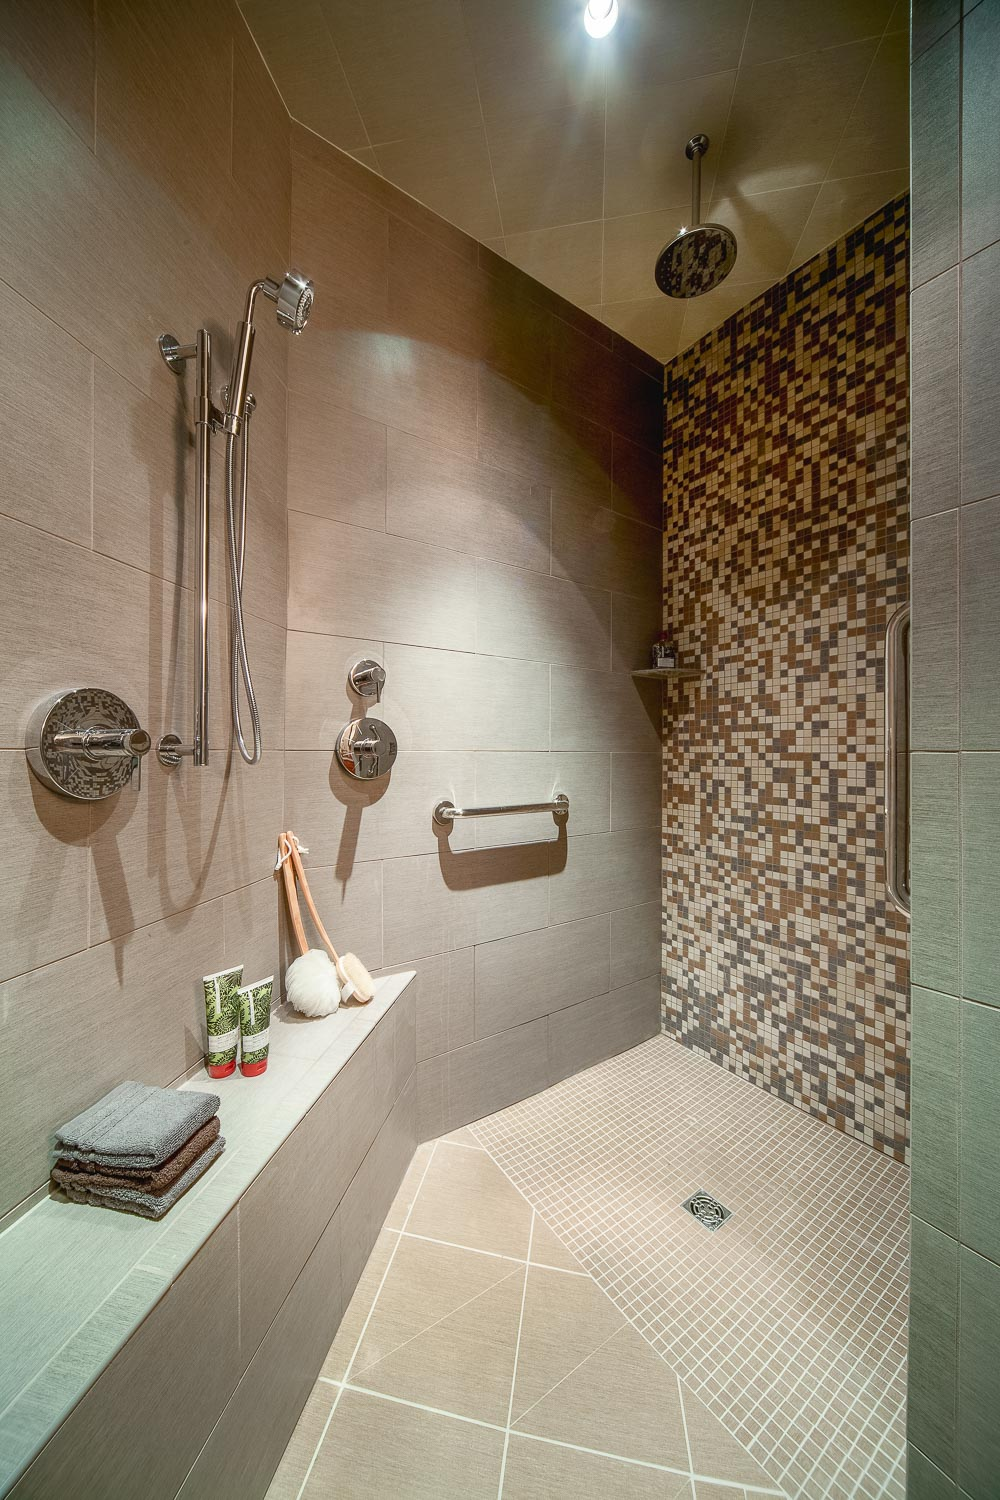 - This shower has a through-the-ceiling rain shower head, as well as grab bars, a seat, and a handheld shower head.